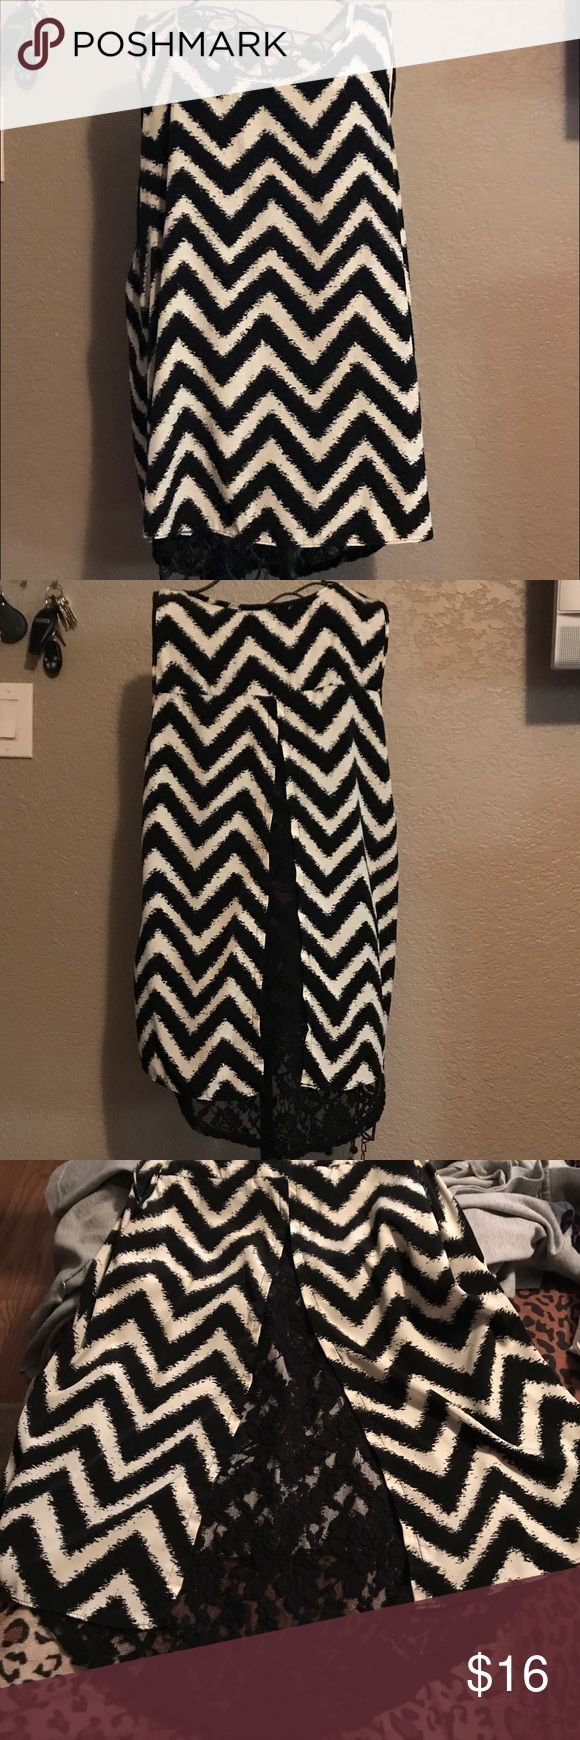 Black and white chevron top Black and white chevron top with open back and  black lace underneath Moa Moa Tops Blouses